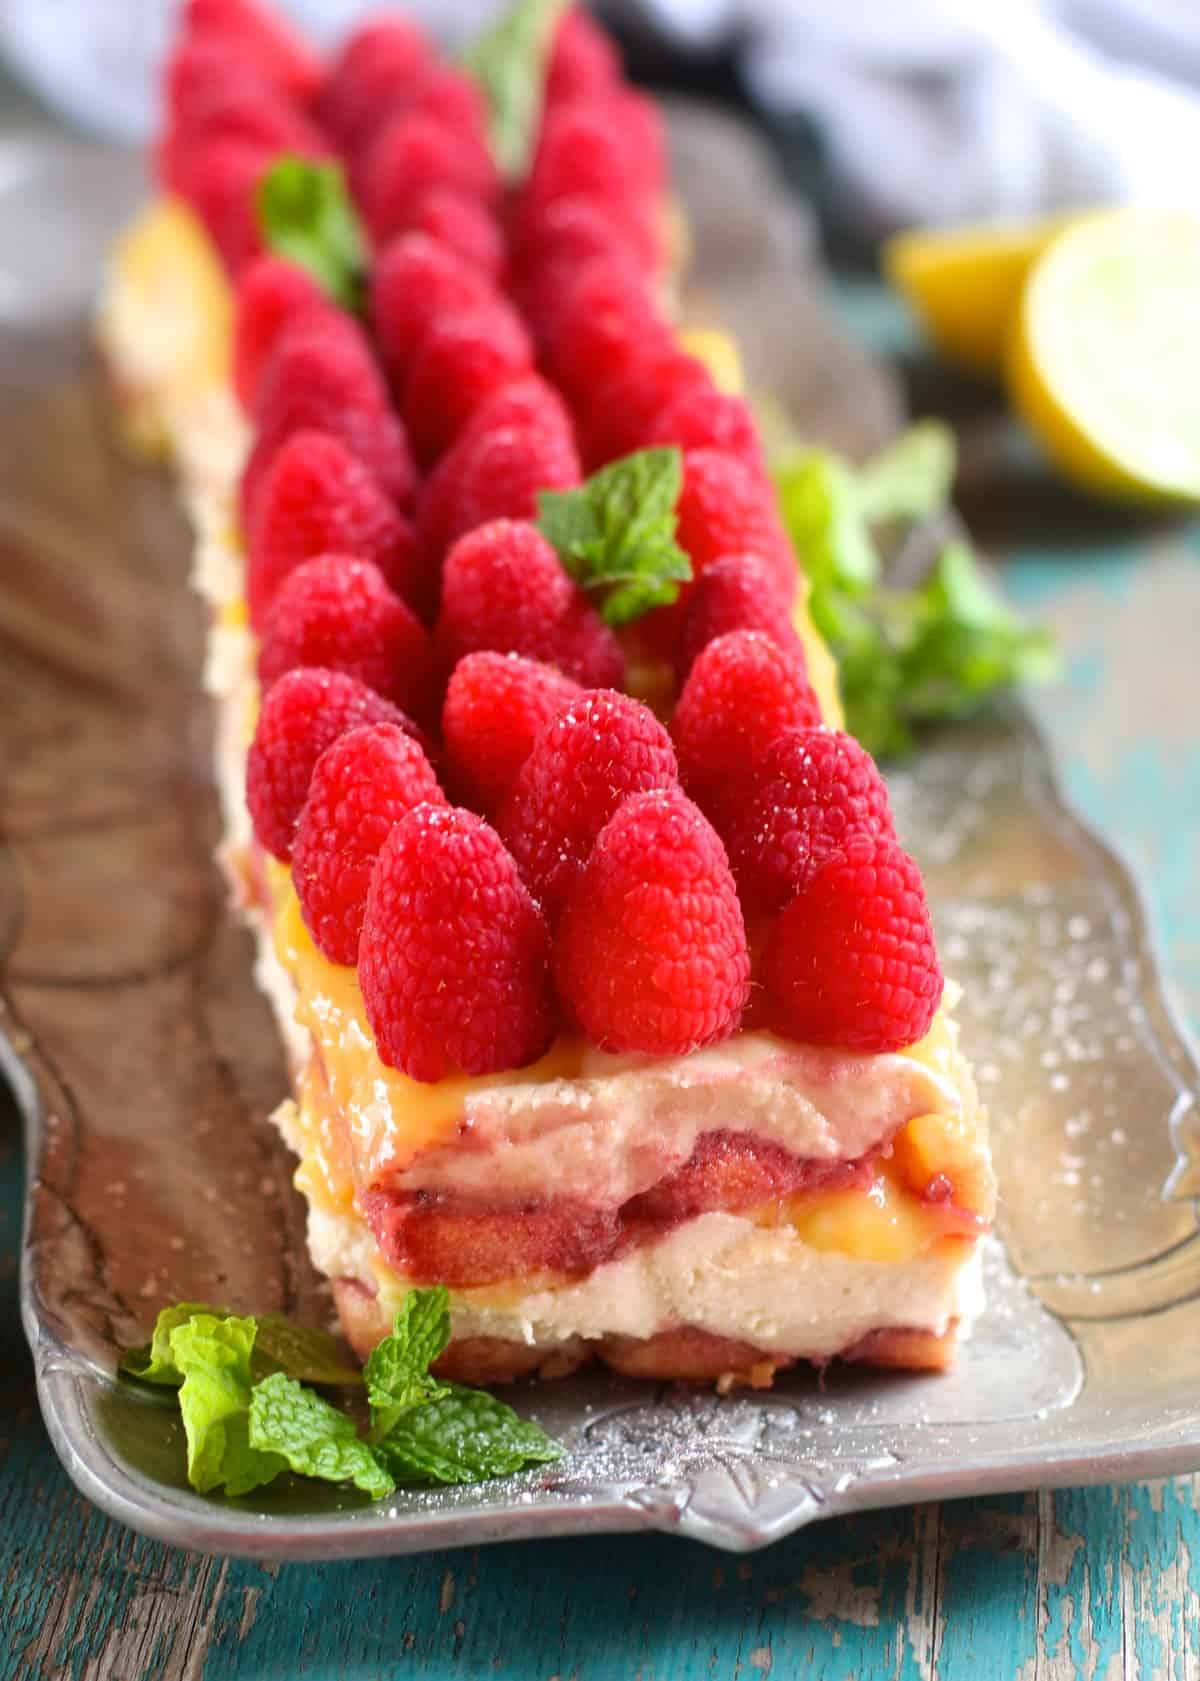 Combining the perfect spring flavors, this Raspberry Lemon Curd Tiramisu is perfect!